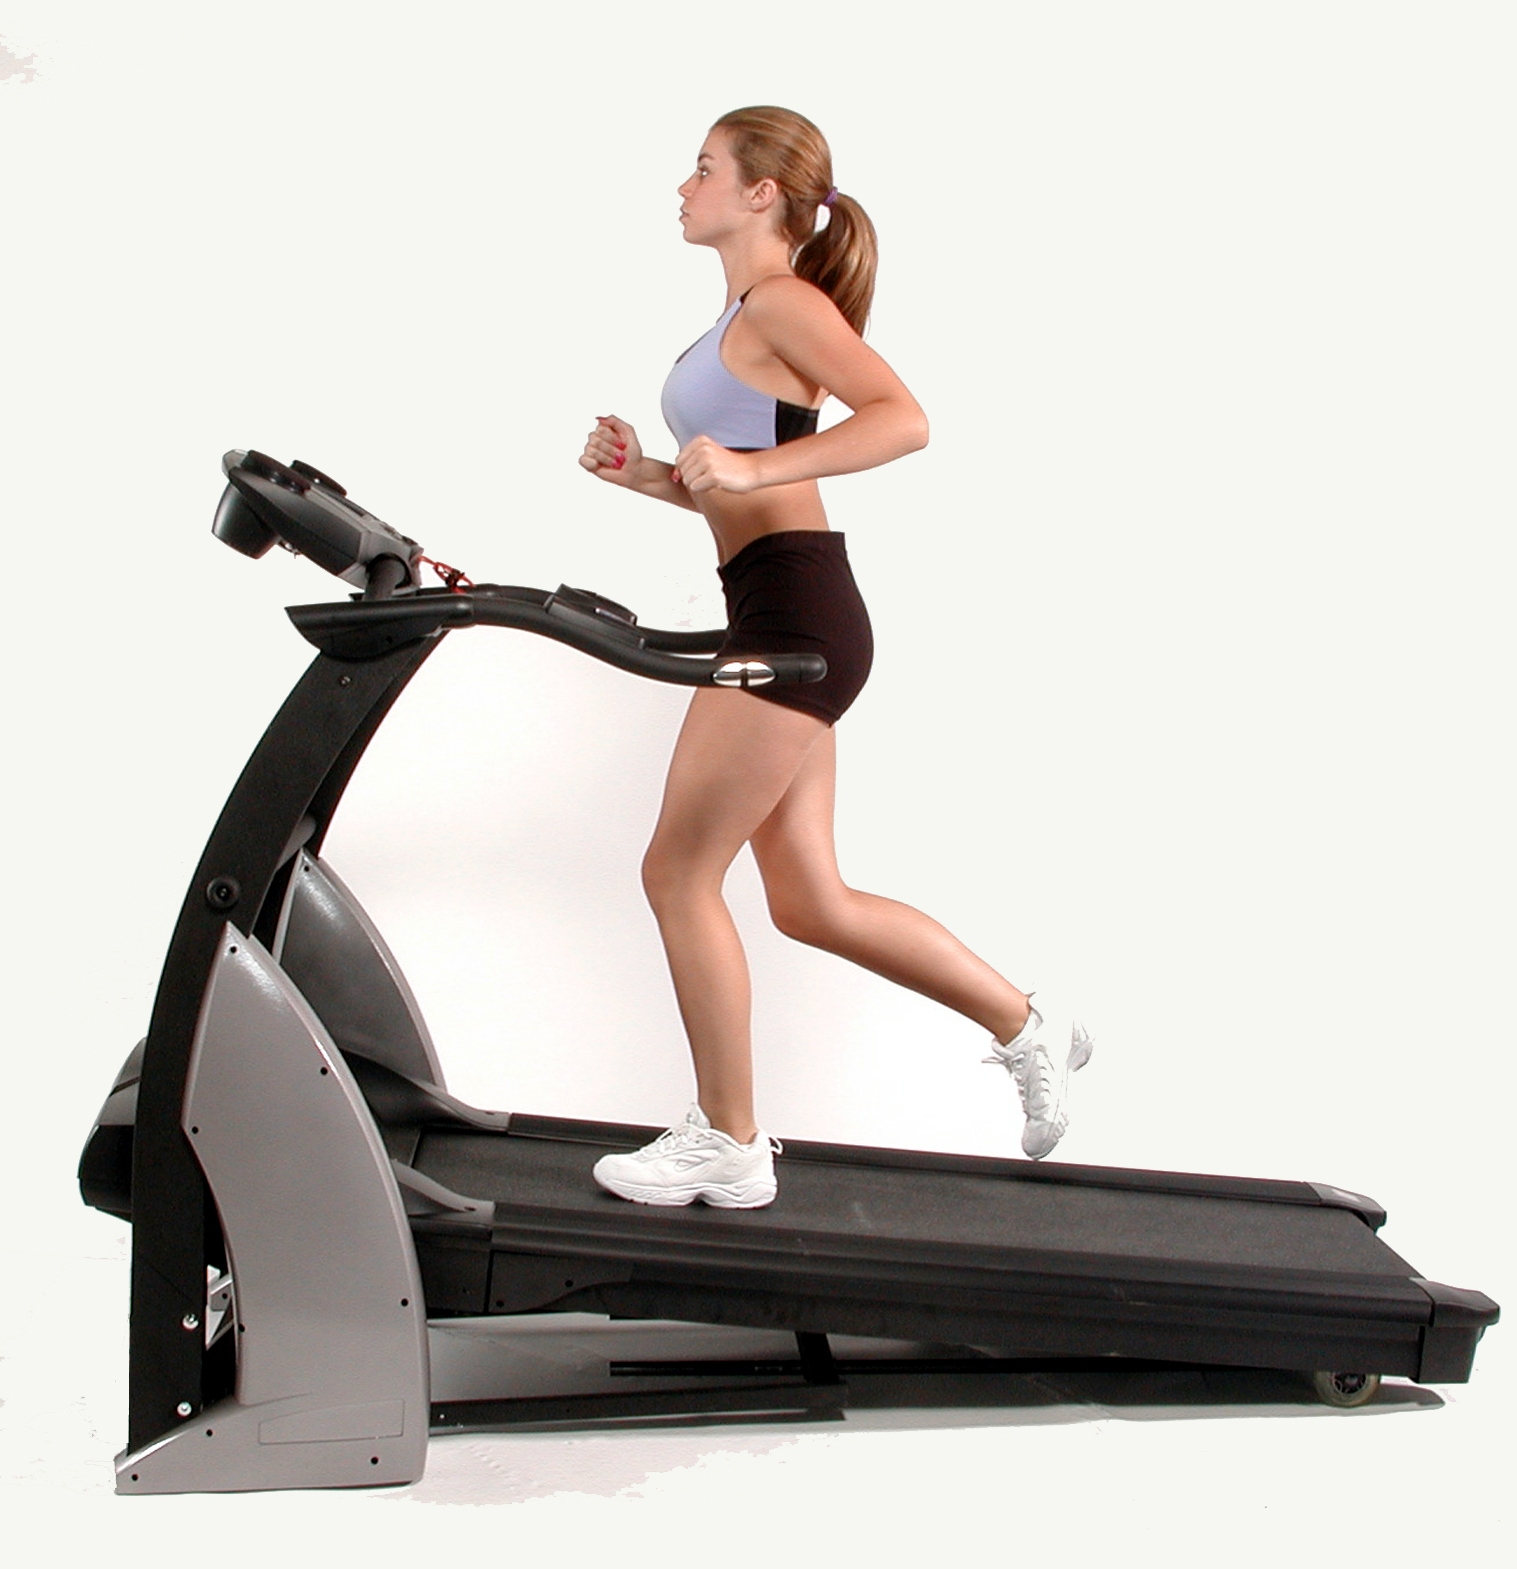 Top 3 Best Treadmills Under 1000 Dollars – Reviewed (2017)